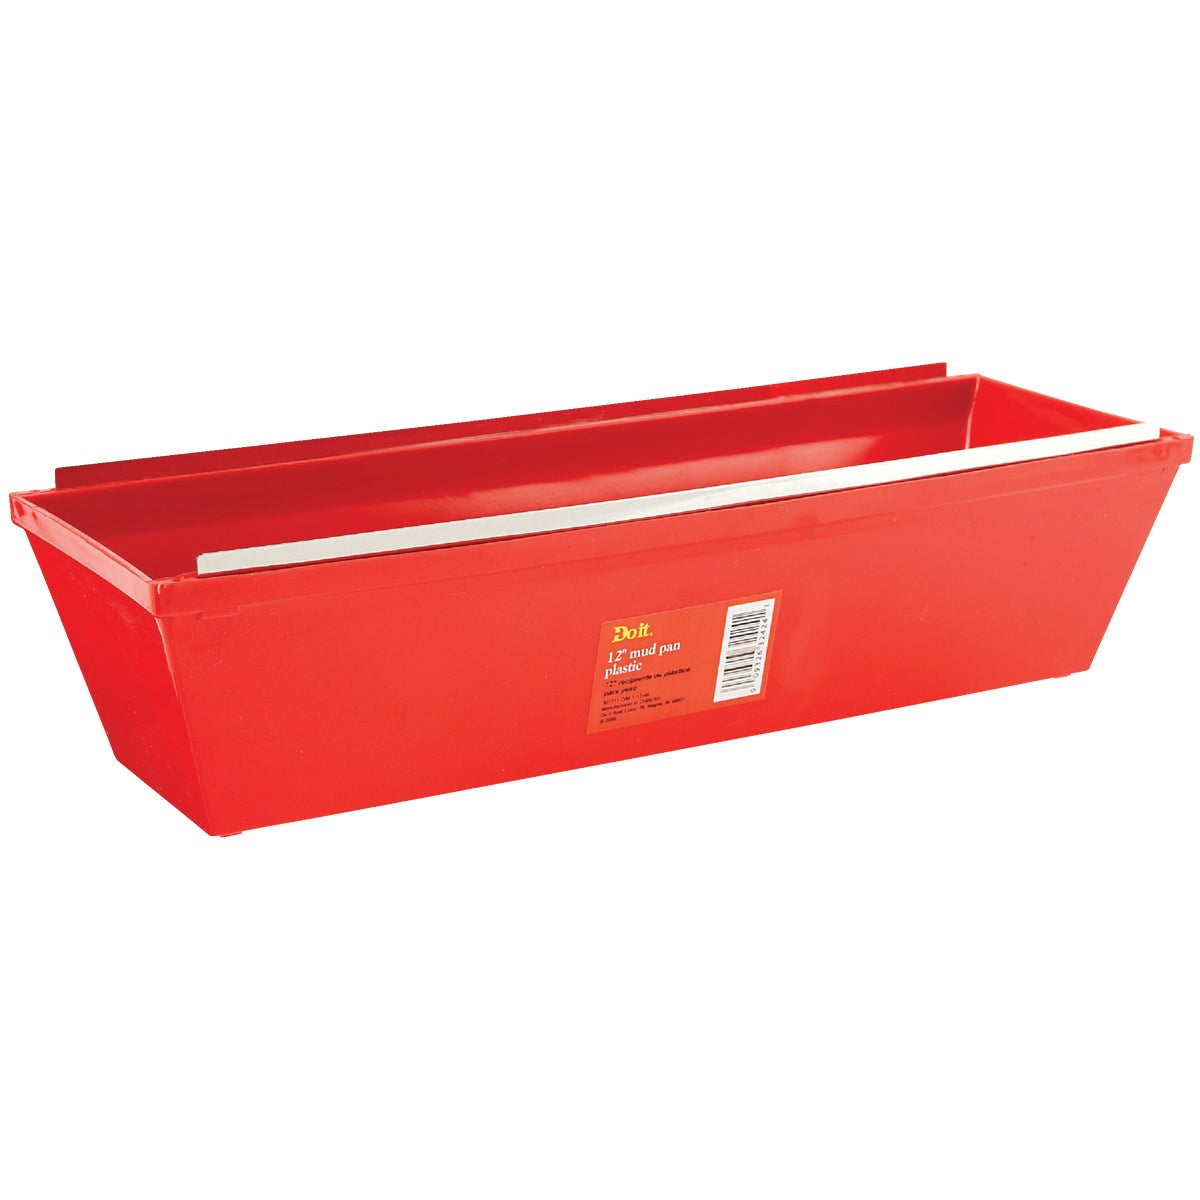 "12"" PLASTIC MUD PAN"